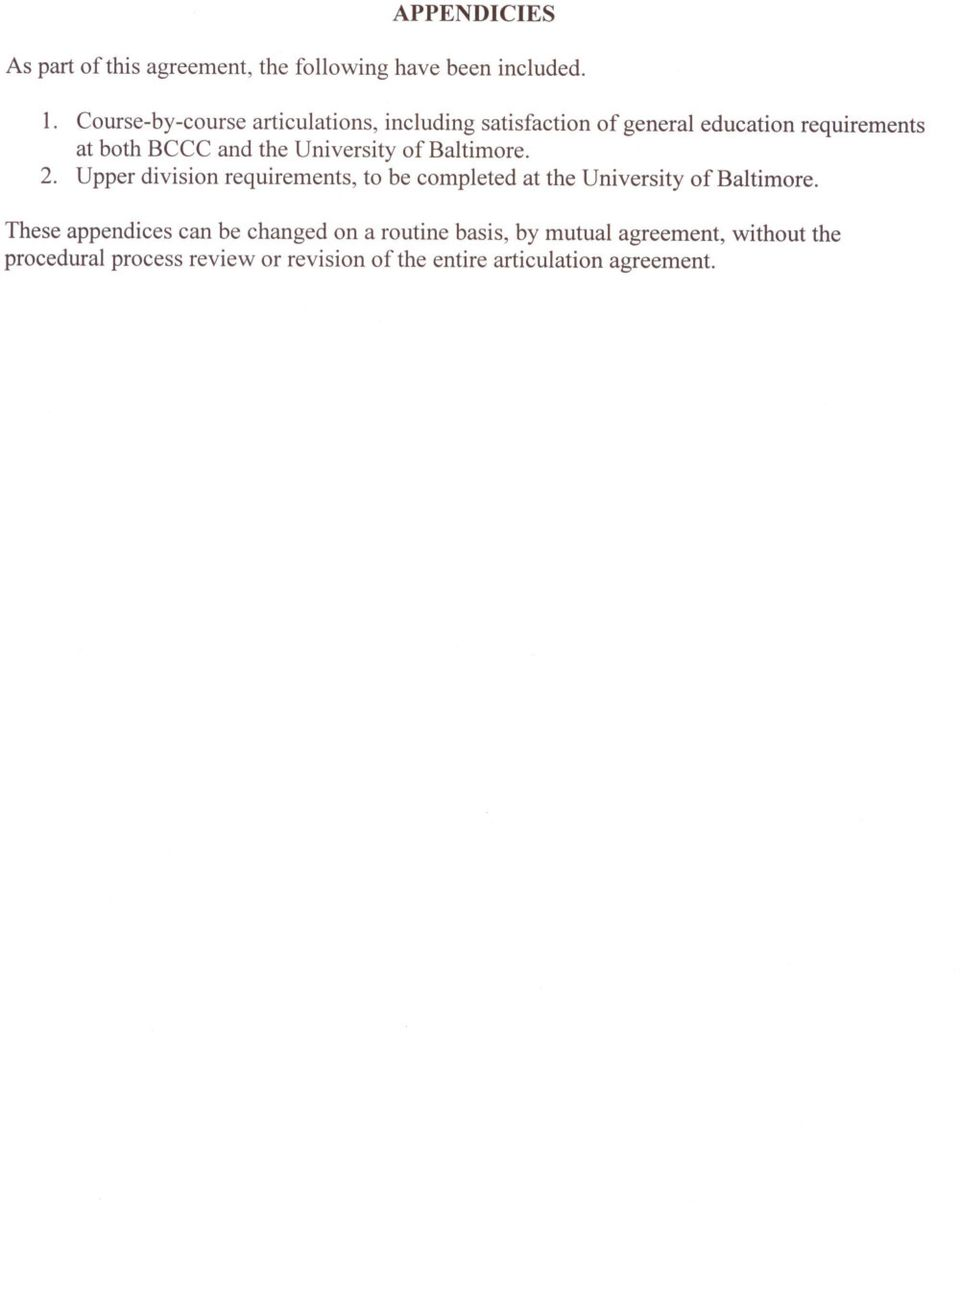 University of Baltimore. 2. Upper division requirements, to be completed at the University of Baltimore.